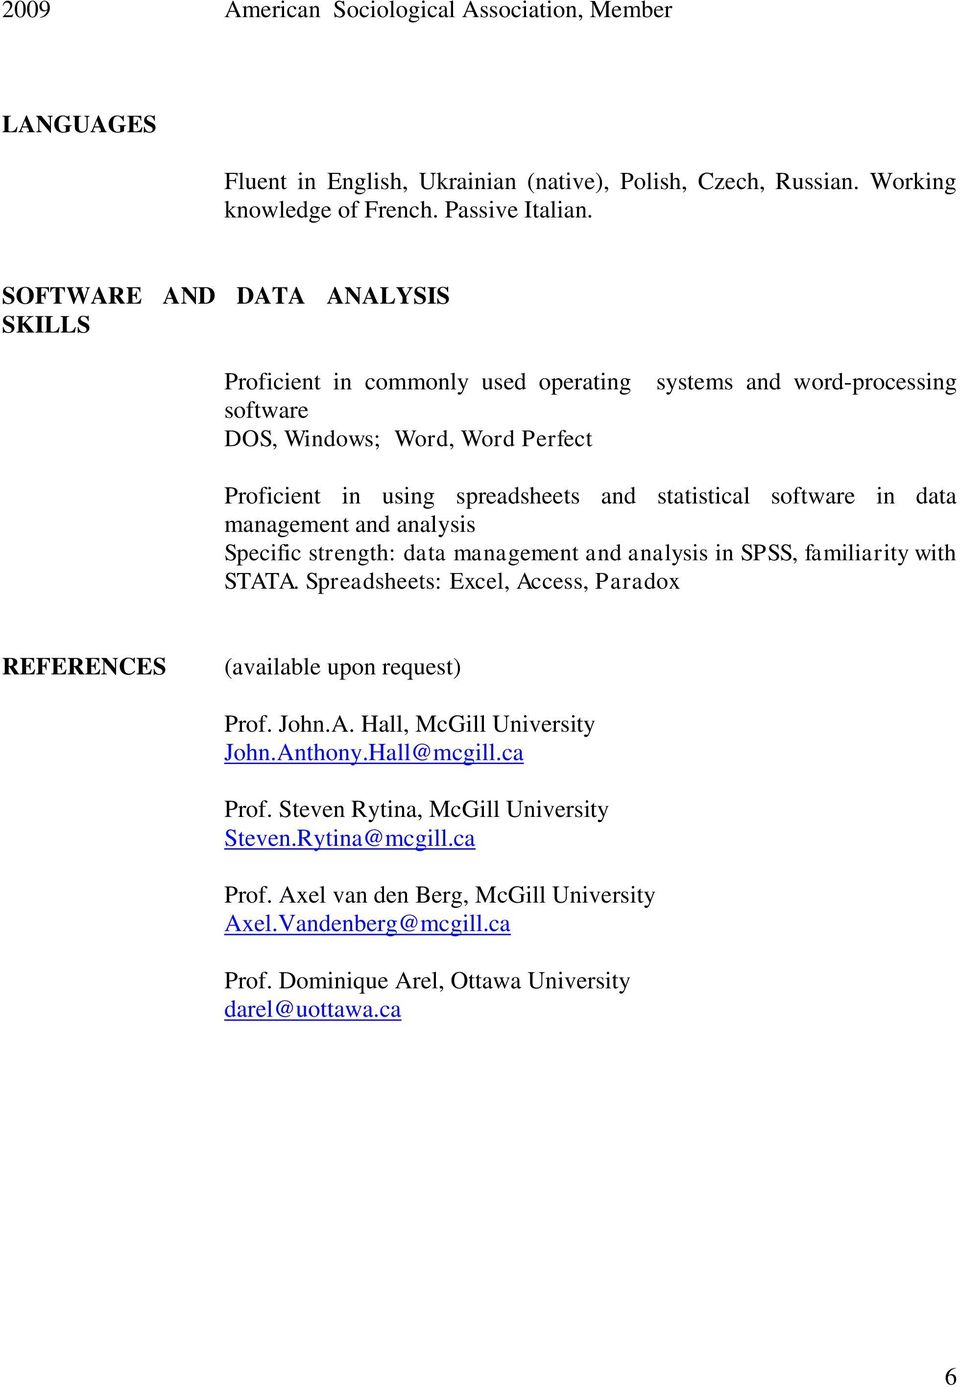 in data management and analysis Specific strength: data management and analysis in SPSS, familiarity with STATA. Spreadsheets: Excel, Access, Paradox REFERENCES (available upon request) Prof. John.A. Hall, McGill University John.